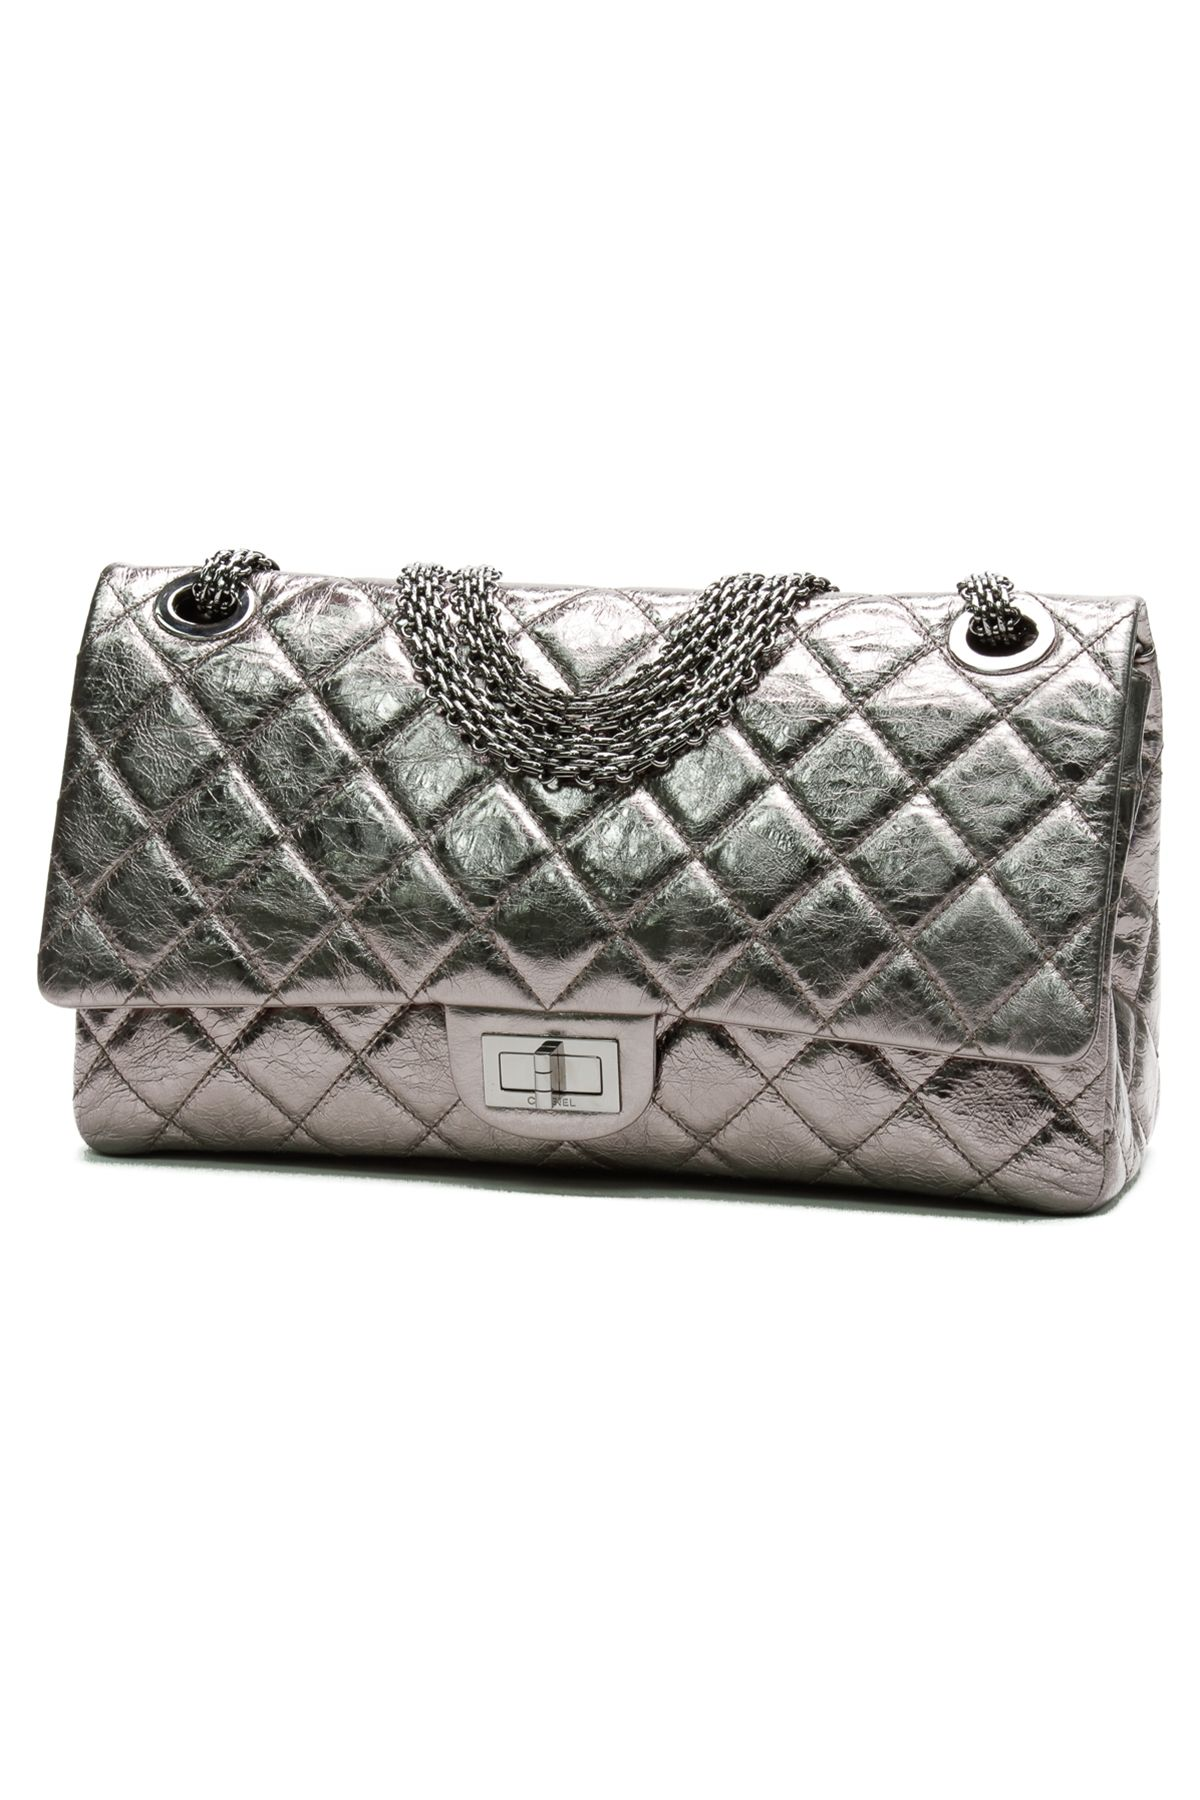 004081e95e69 Chanel Metallic Silver Calfskin Reissue 228 Flap Handbag | Put The ...